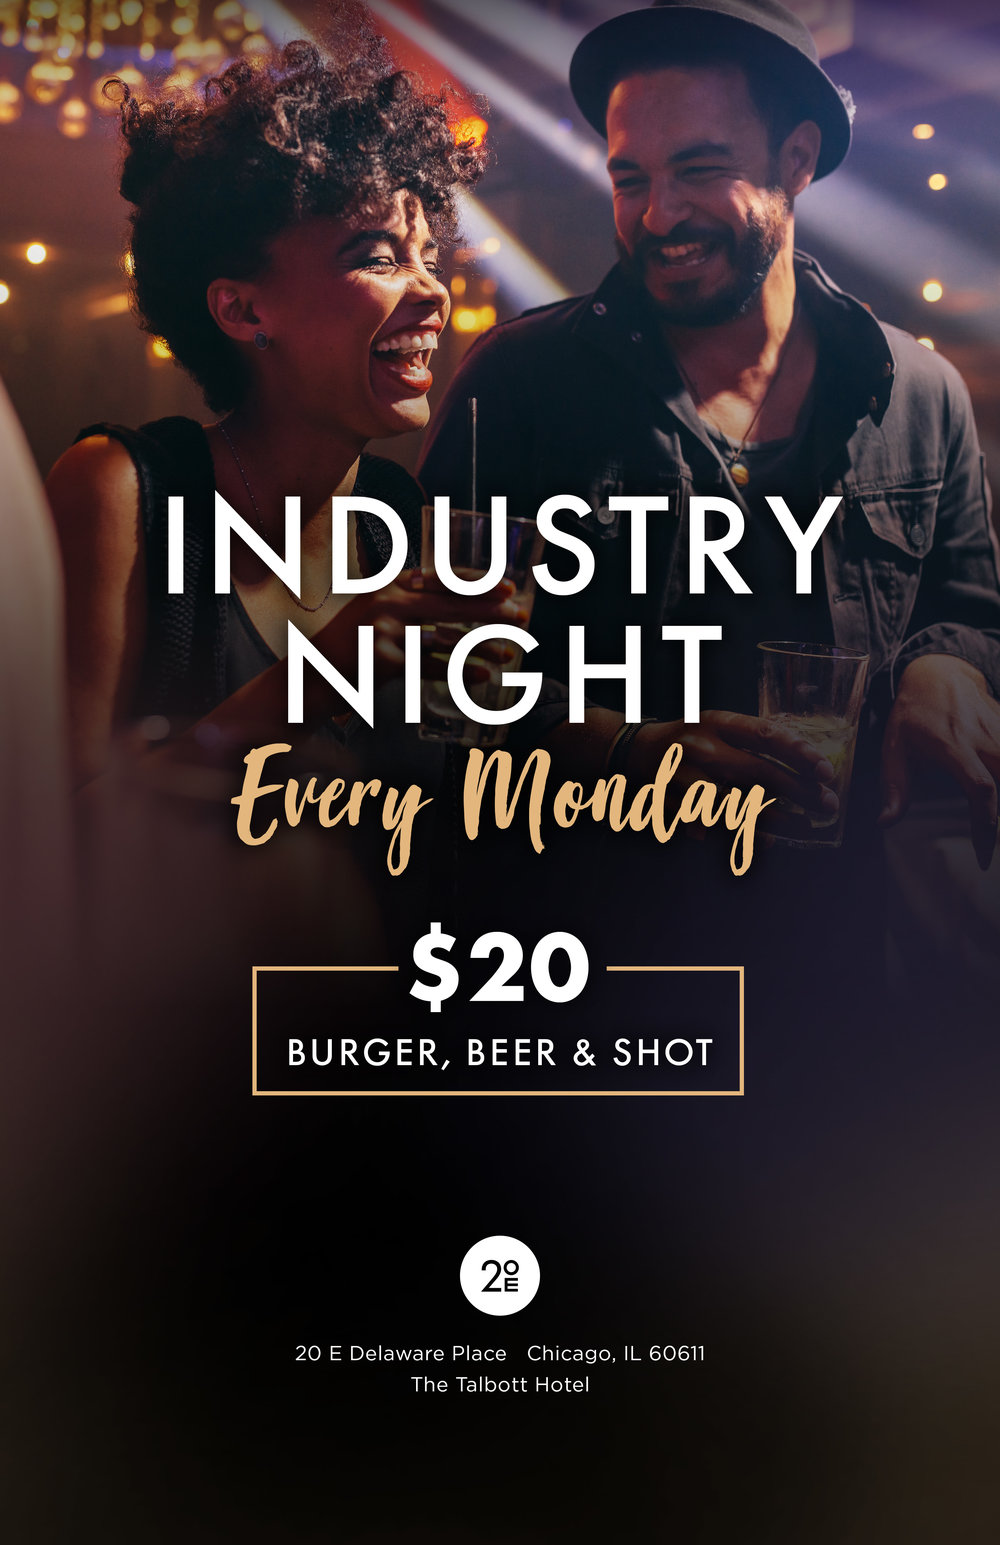 Join us for Industry Night every Monday for a Burger, Beer & Shot for $20 -